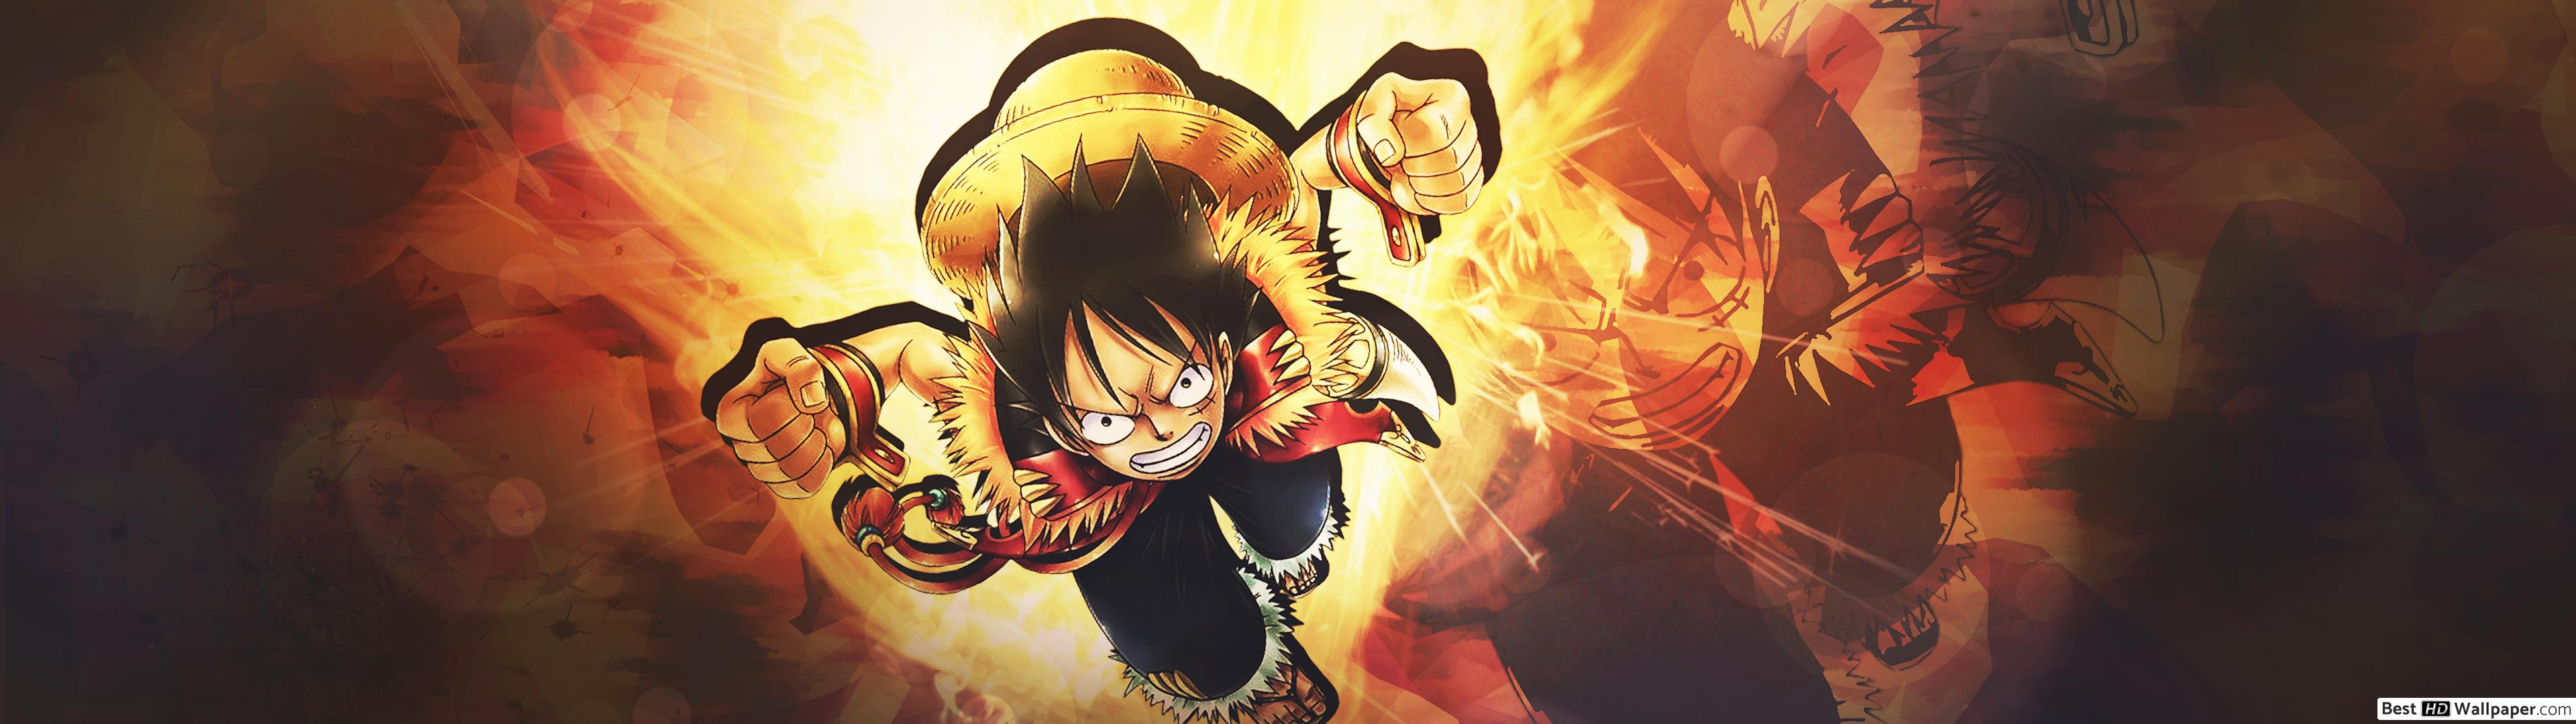 3840x1080 One Piece Wallpapers Top Free 3840x1080 One Piece Backgrounds Wallpaperaccess